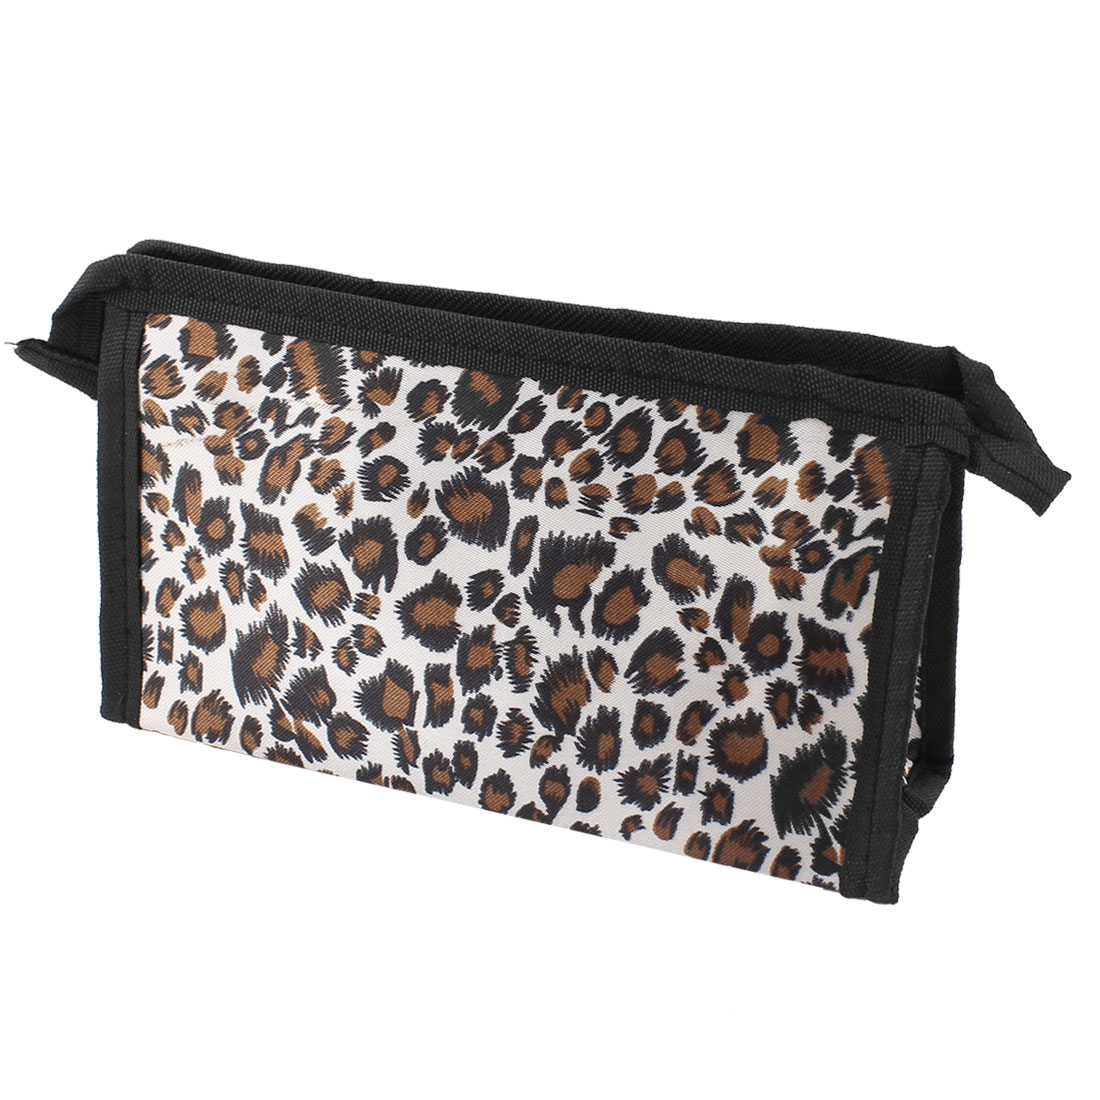 Lady Leopard Print Zippered Rectangular Makeup Holder Cosmetic Pouch Bag